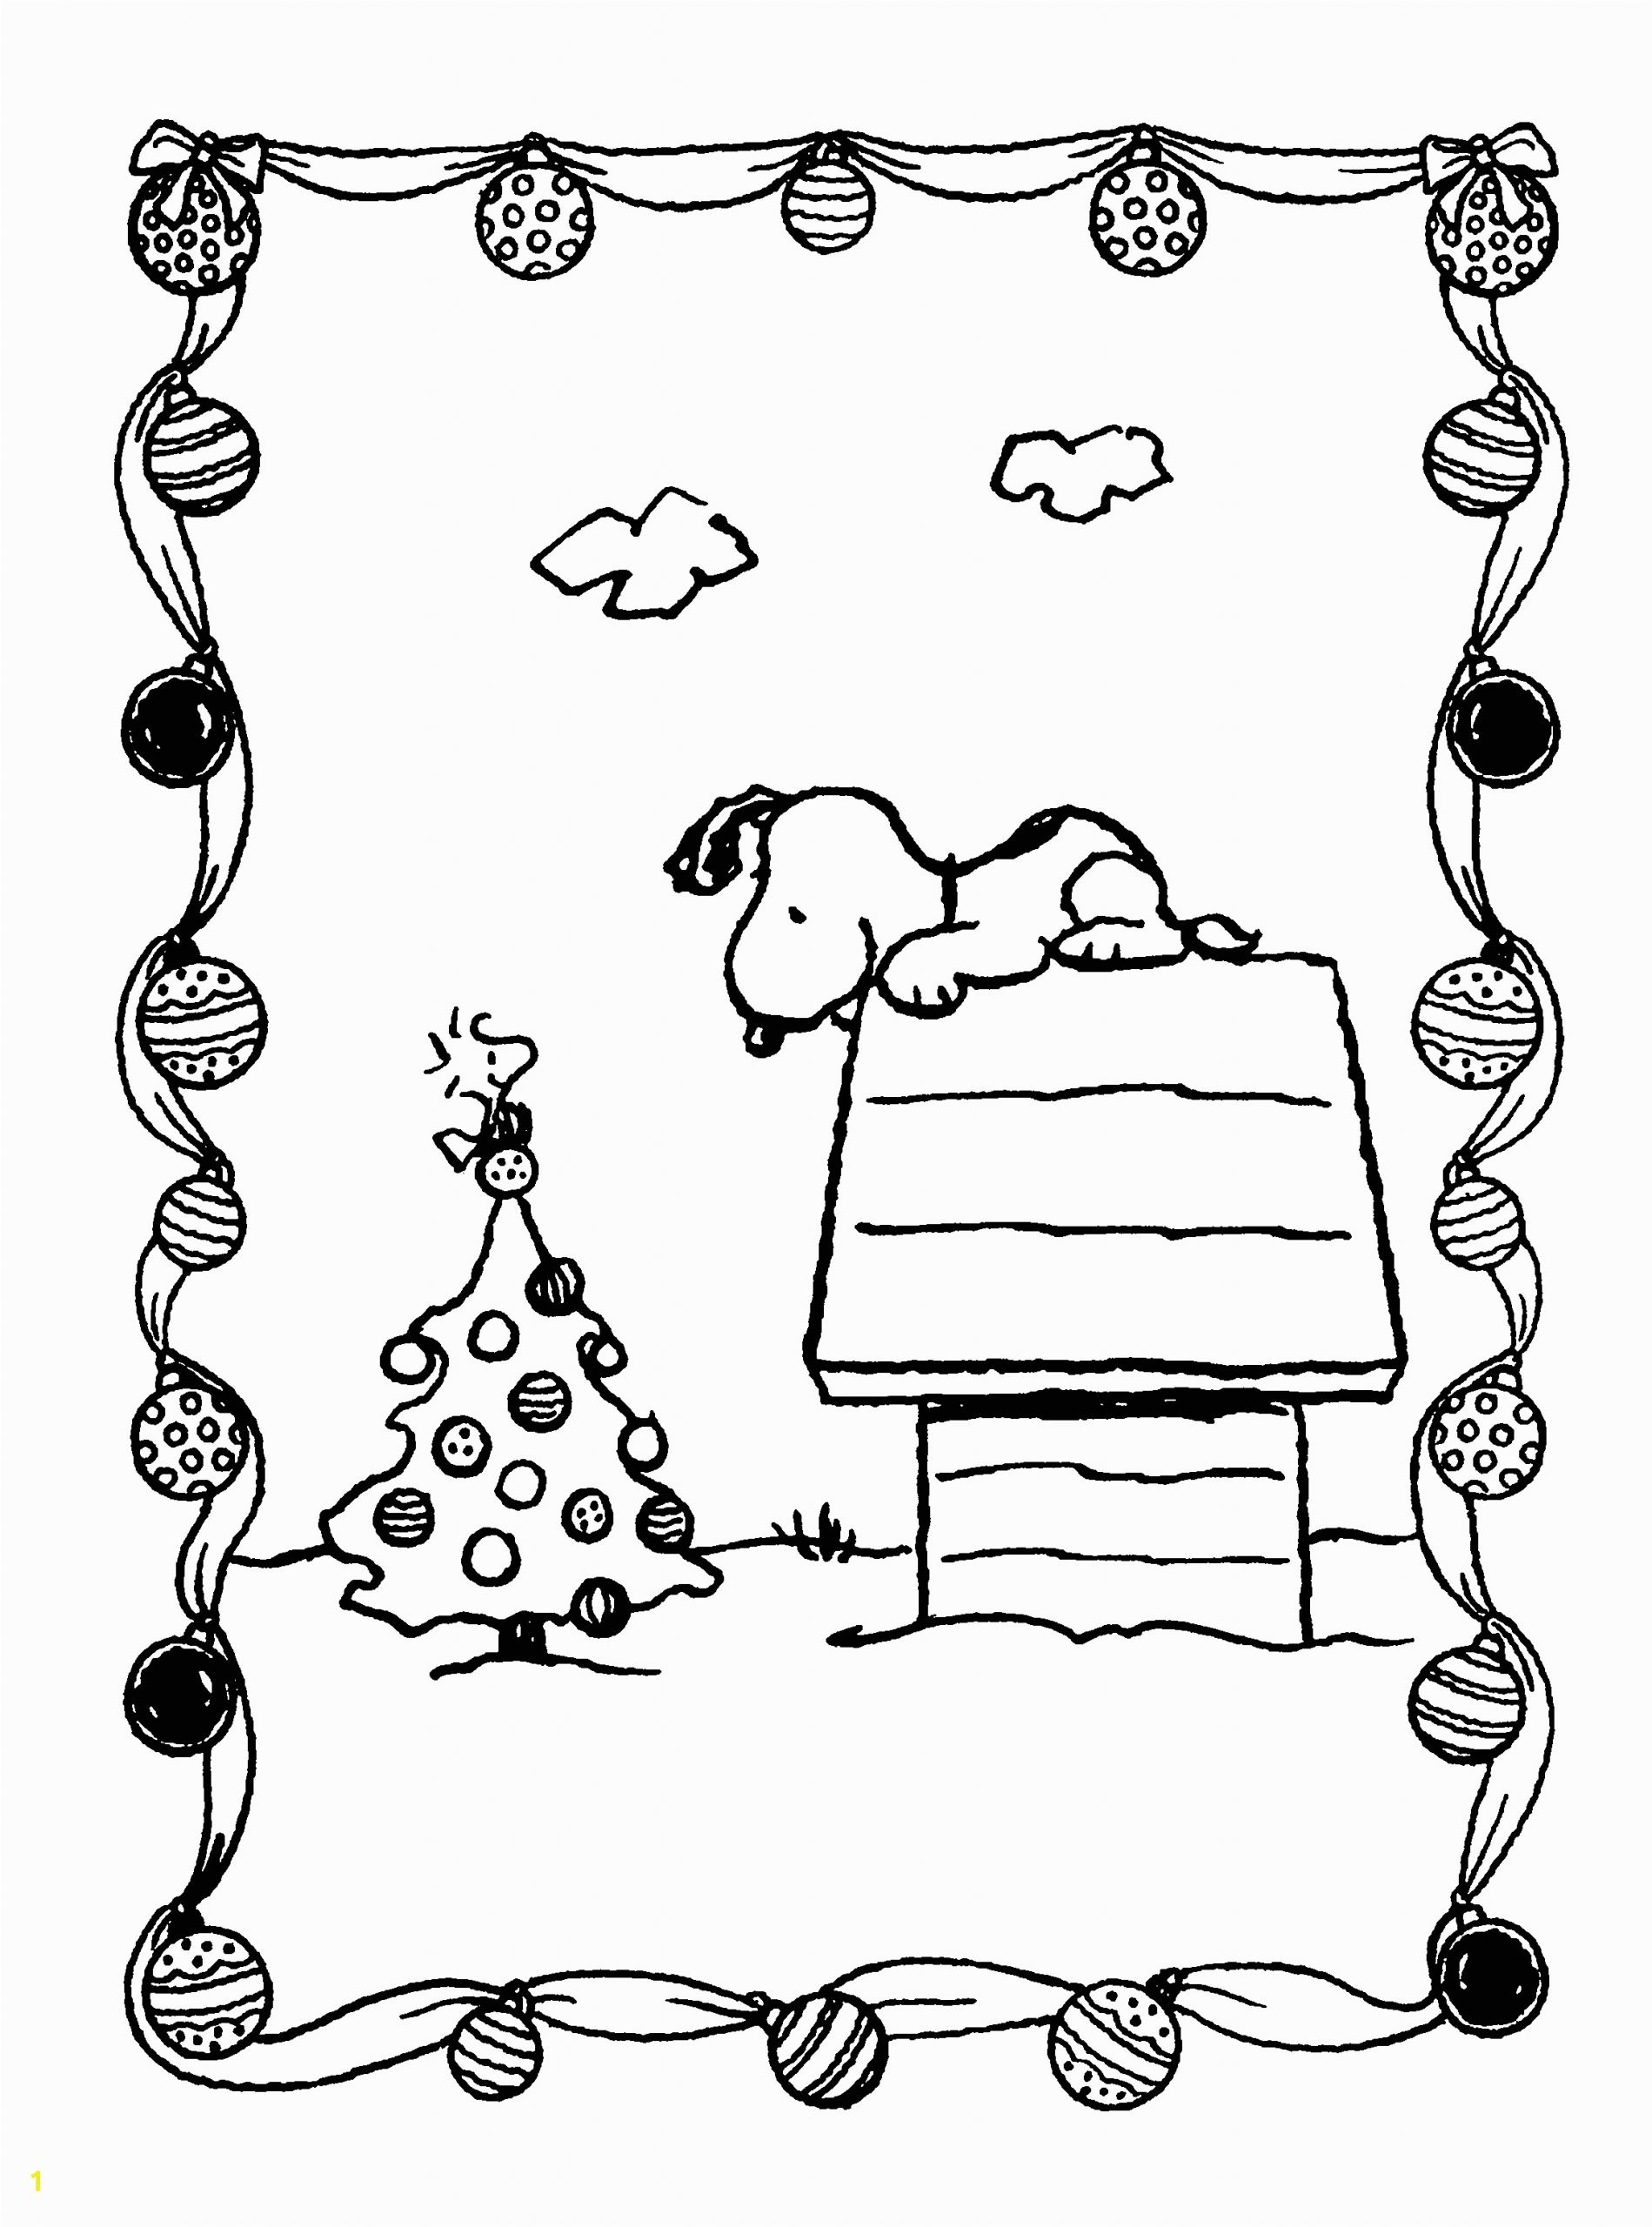 Snoopy and Woodstock Christmas Coloring Pages Peanuts Xmas Coloring and Activity Book